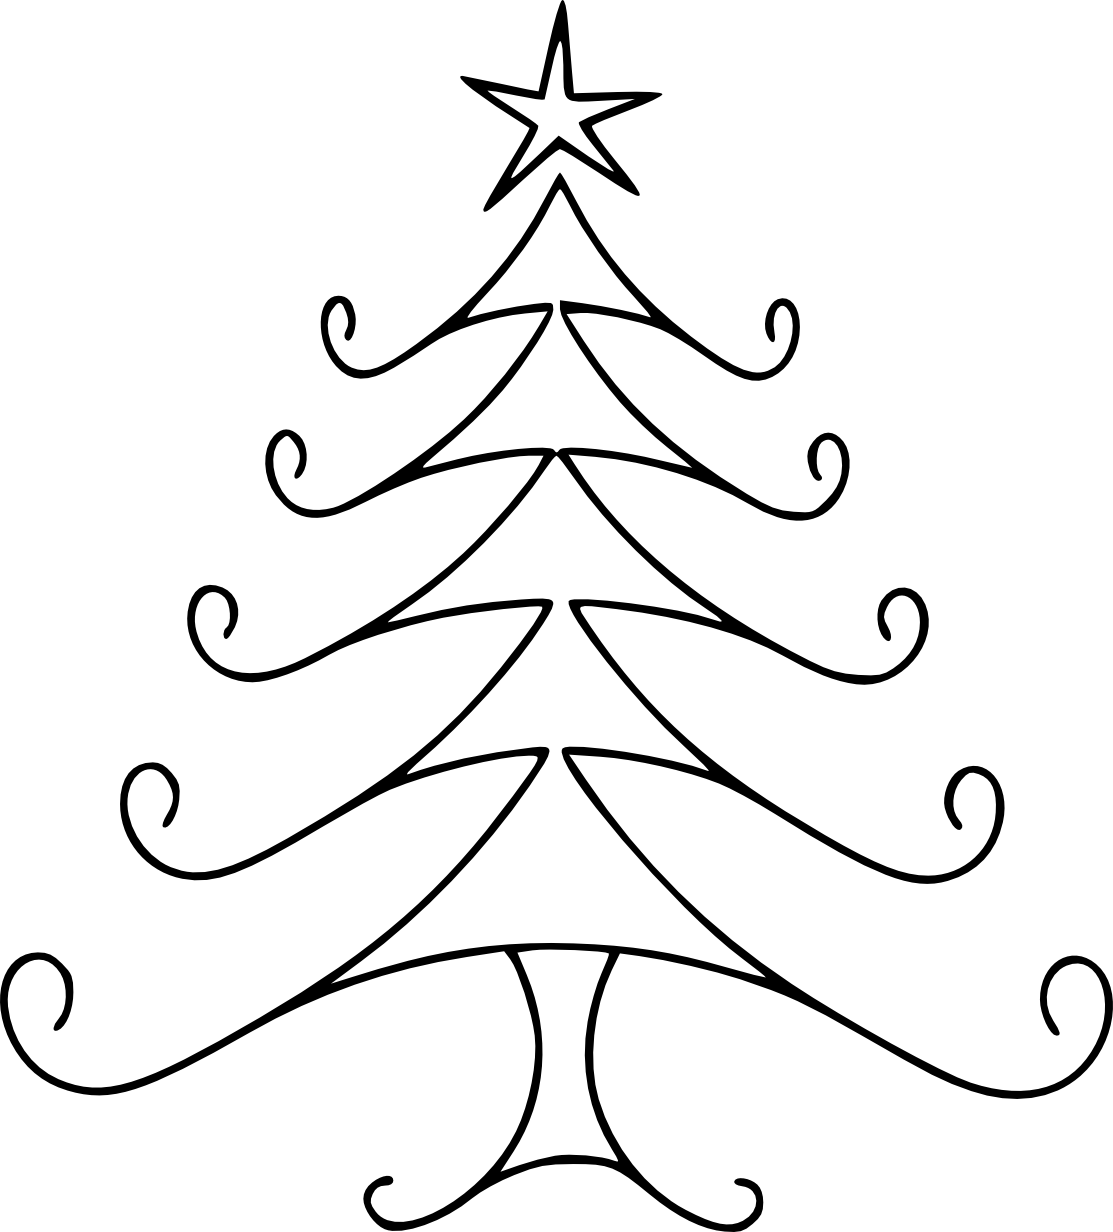 Christmas ornaments drawing png. Line cliparts craft holidays